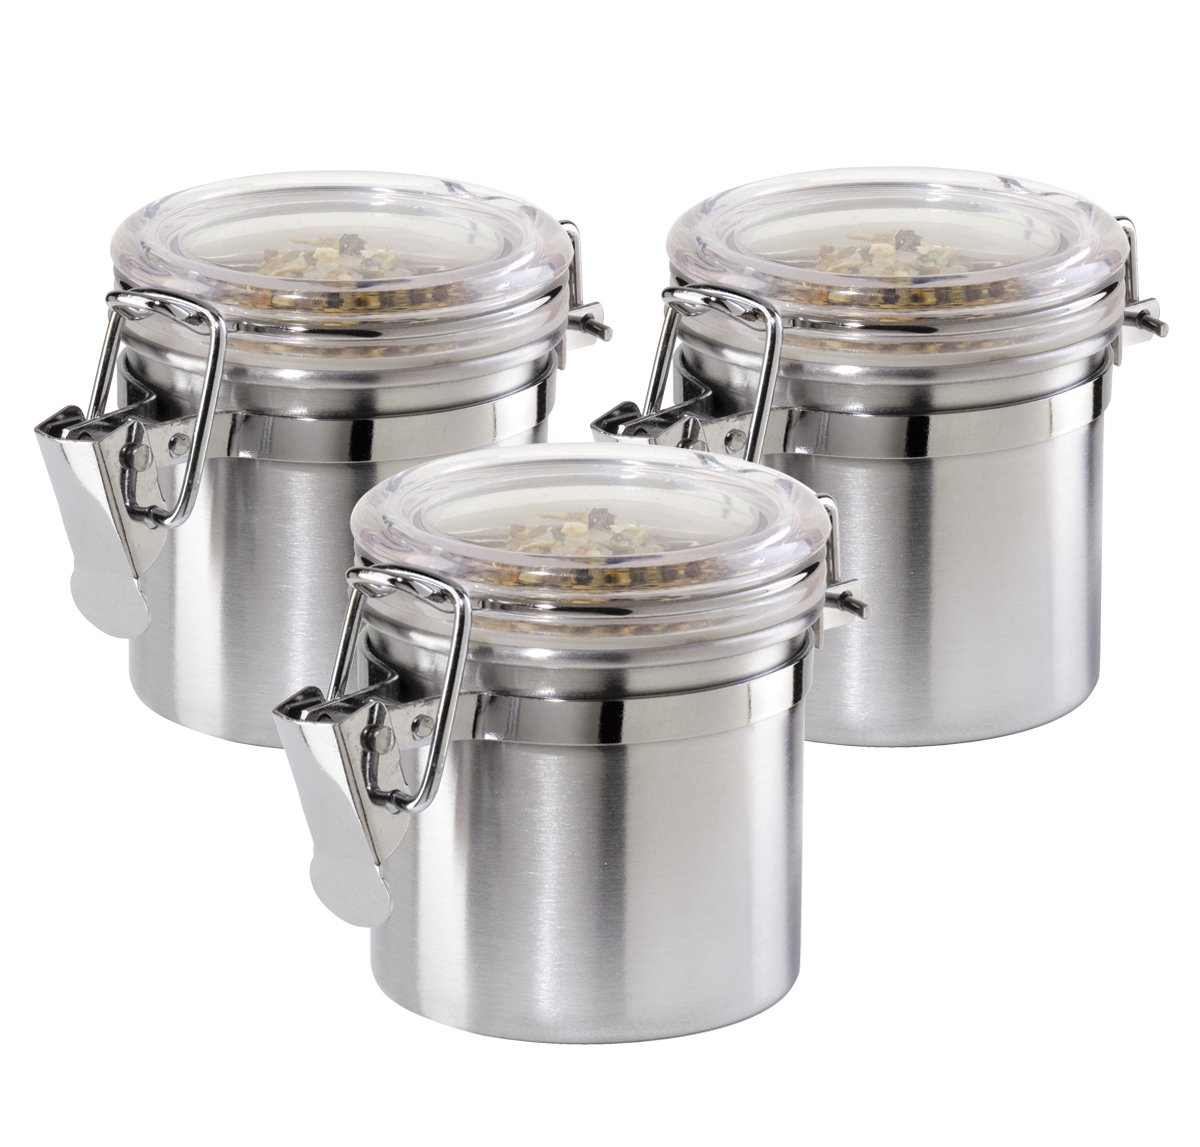 amazon com oggi 3 piece mini stainless steel canister set with amazon com oggi 3 piece mini stainless steel canister set with clear arylic lid and locking clamp food savers kitchen dining